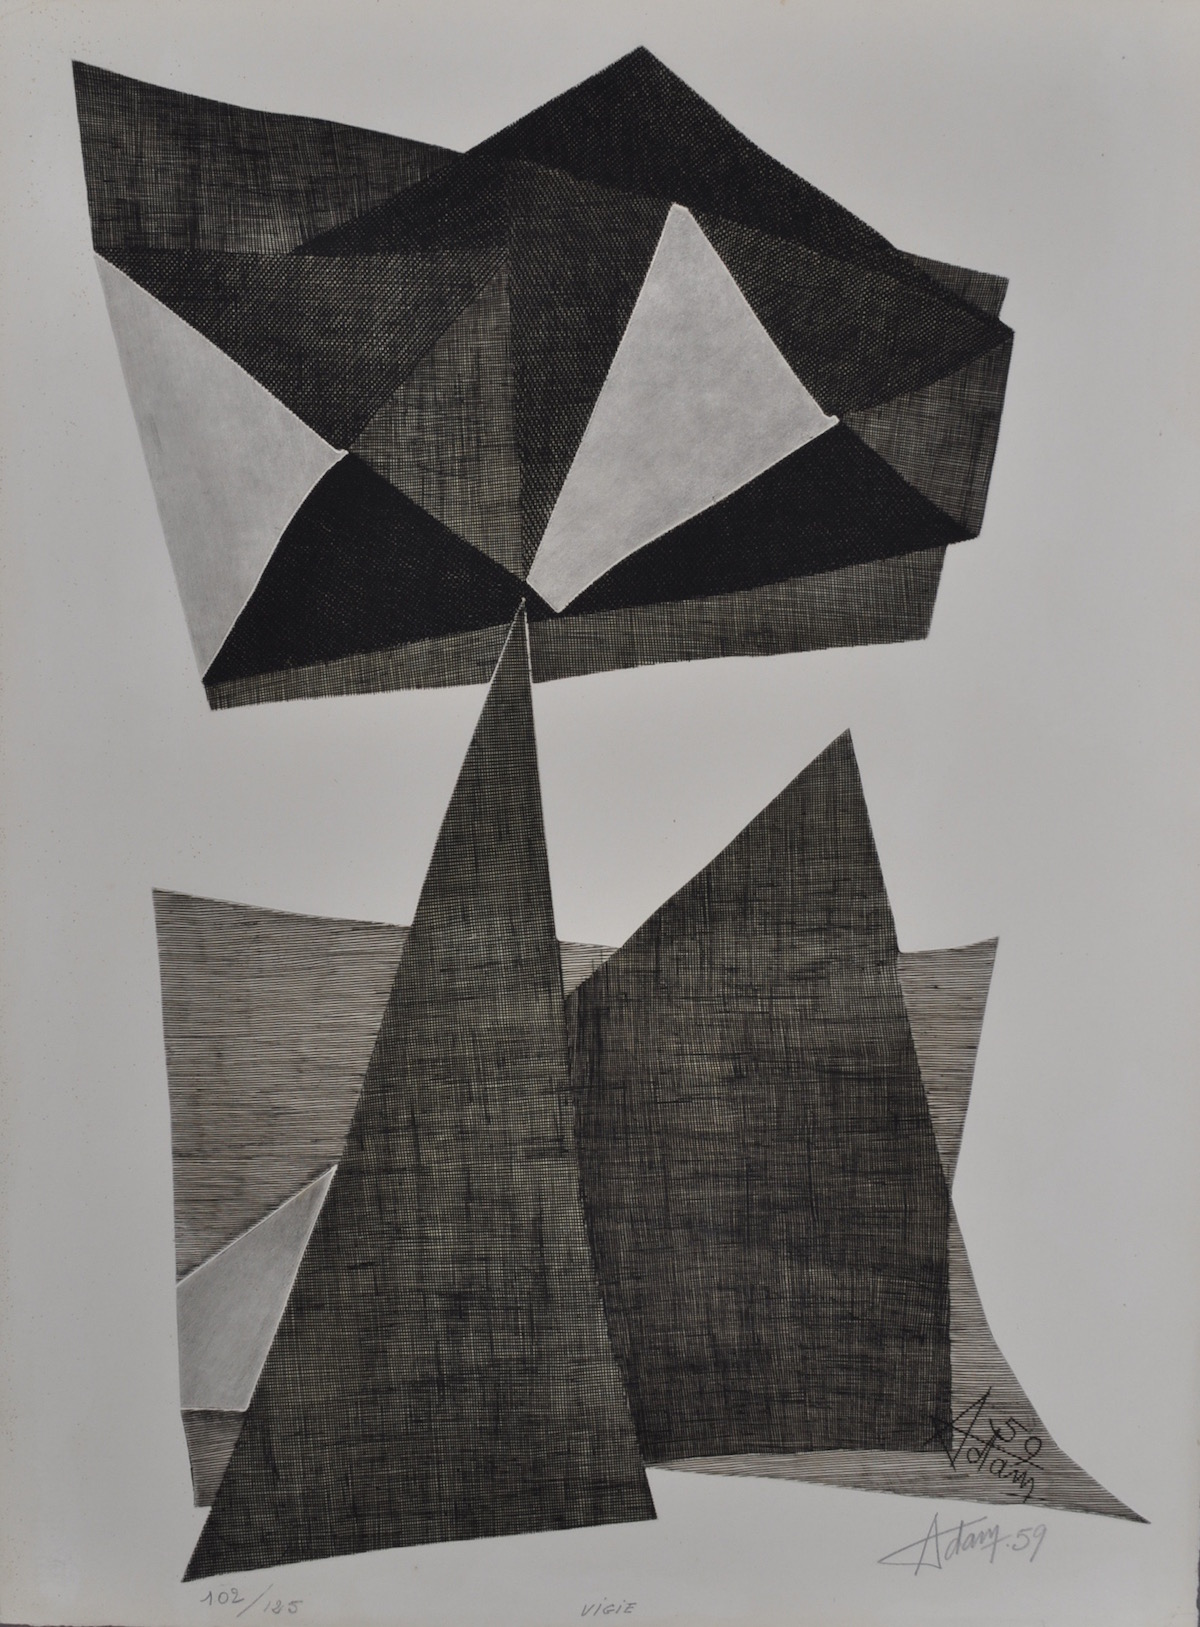 Kinetic Etching by Agam Yaacov Image